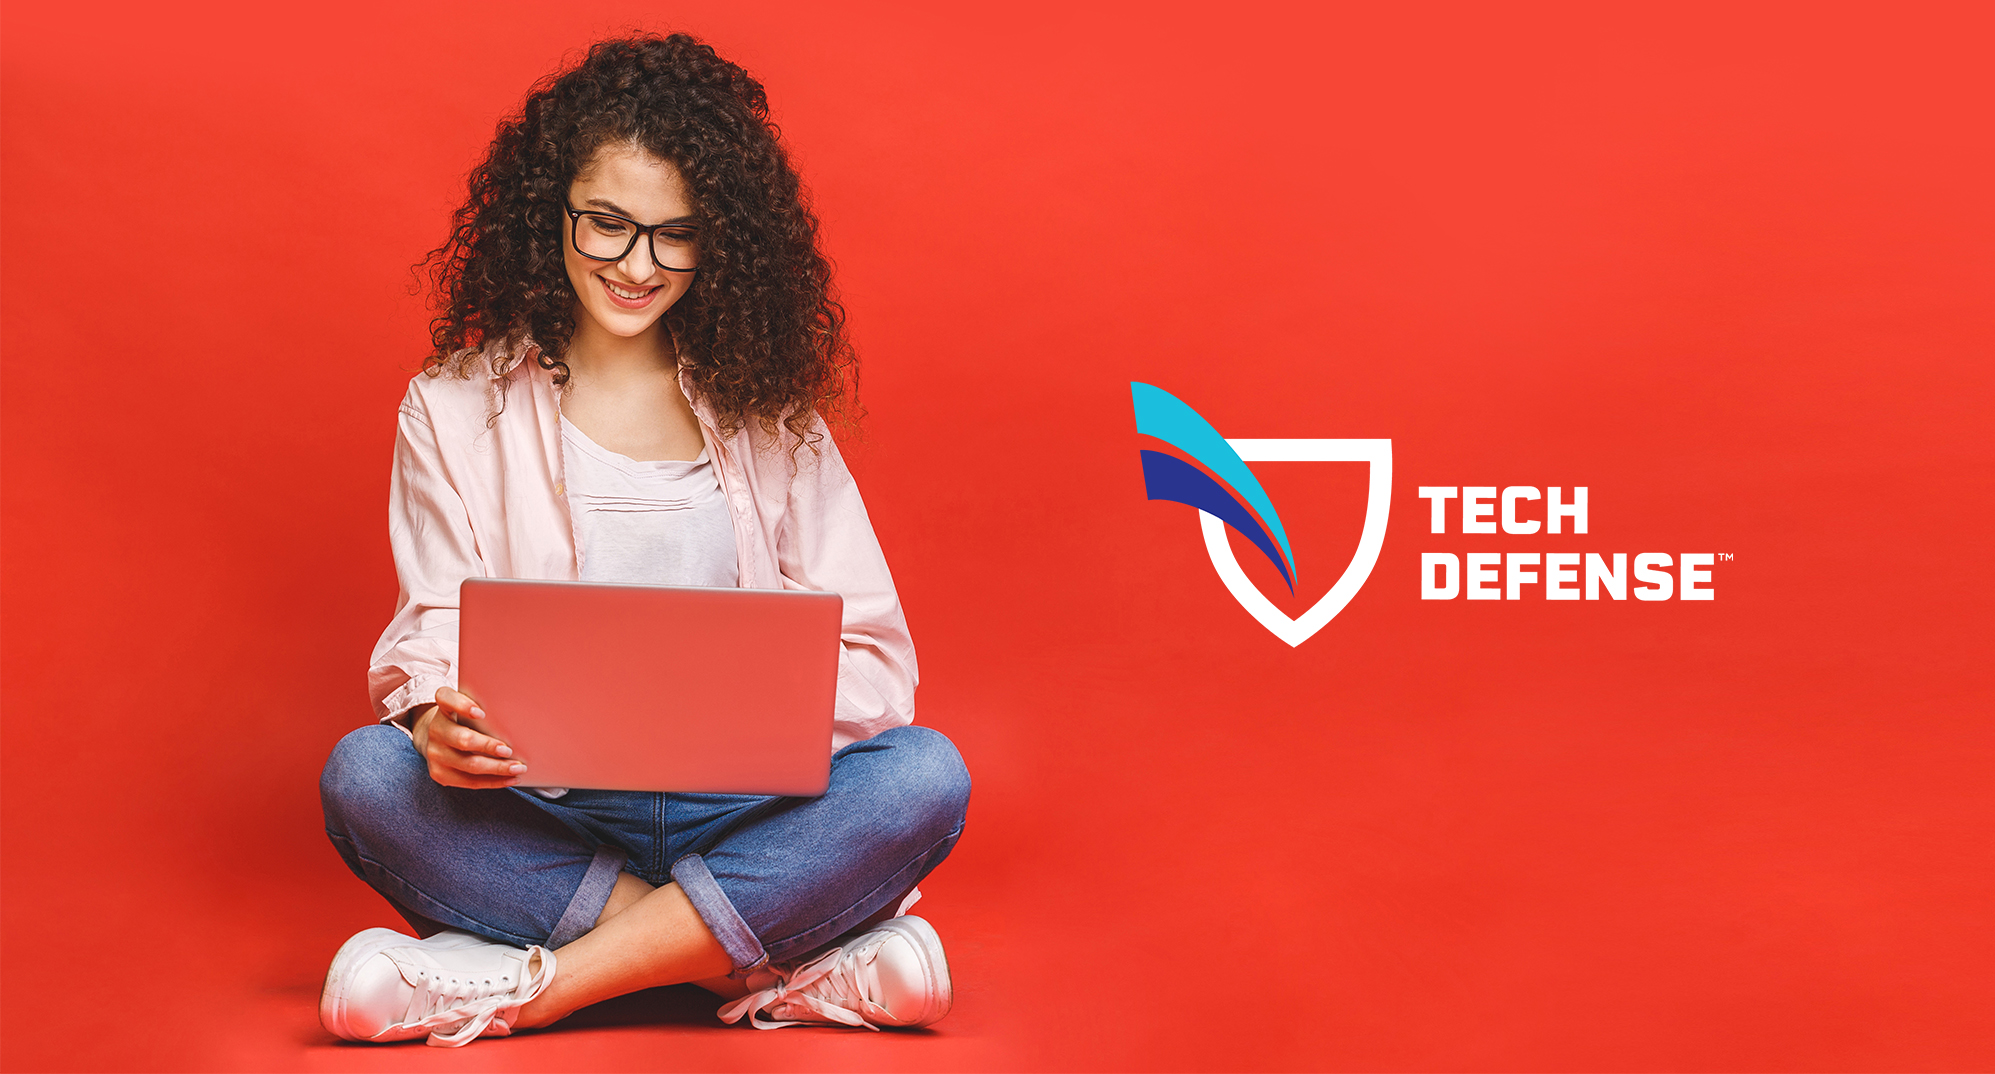 Woman on laptop with the Tech Defense logo™